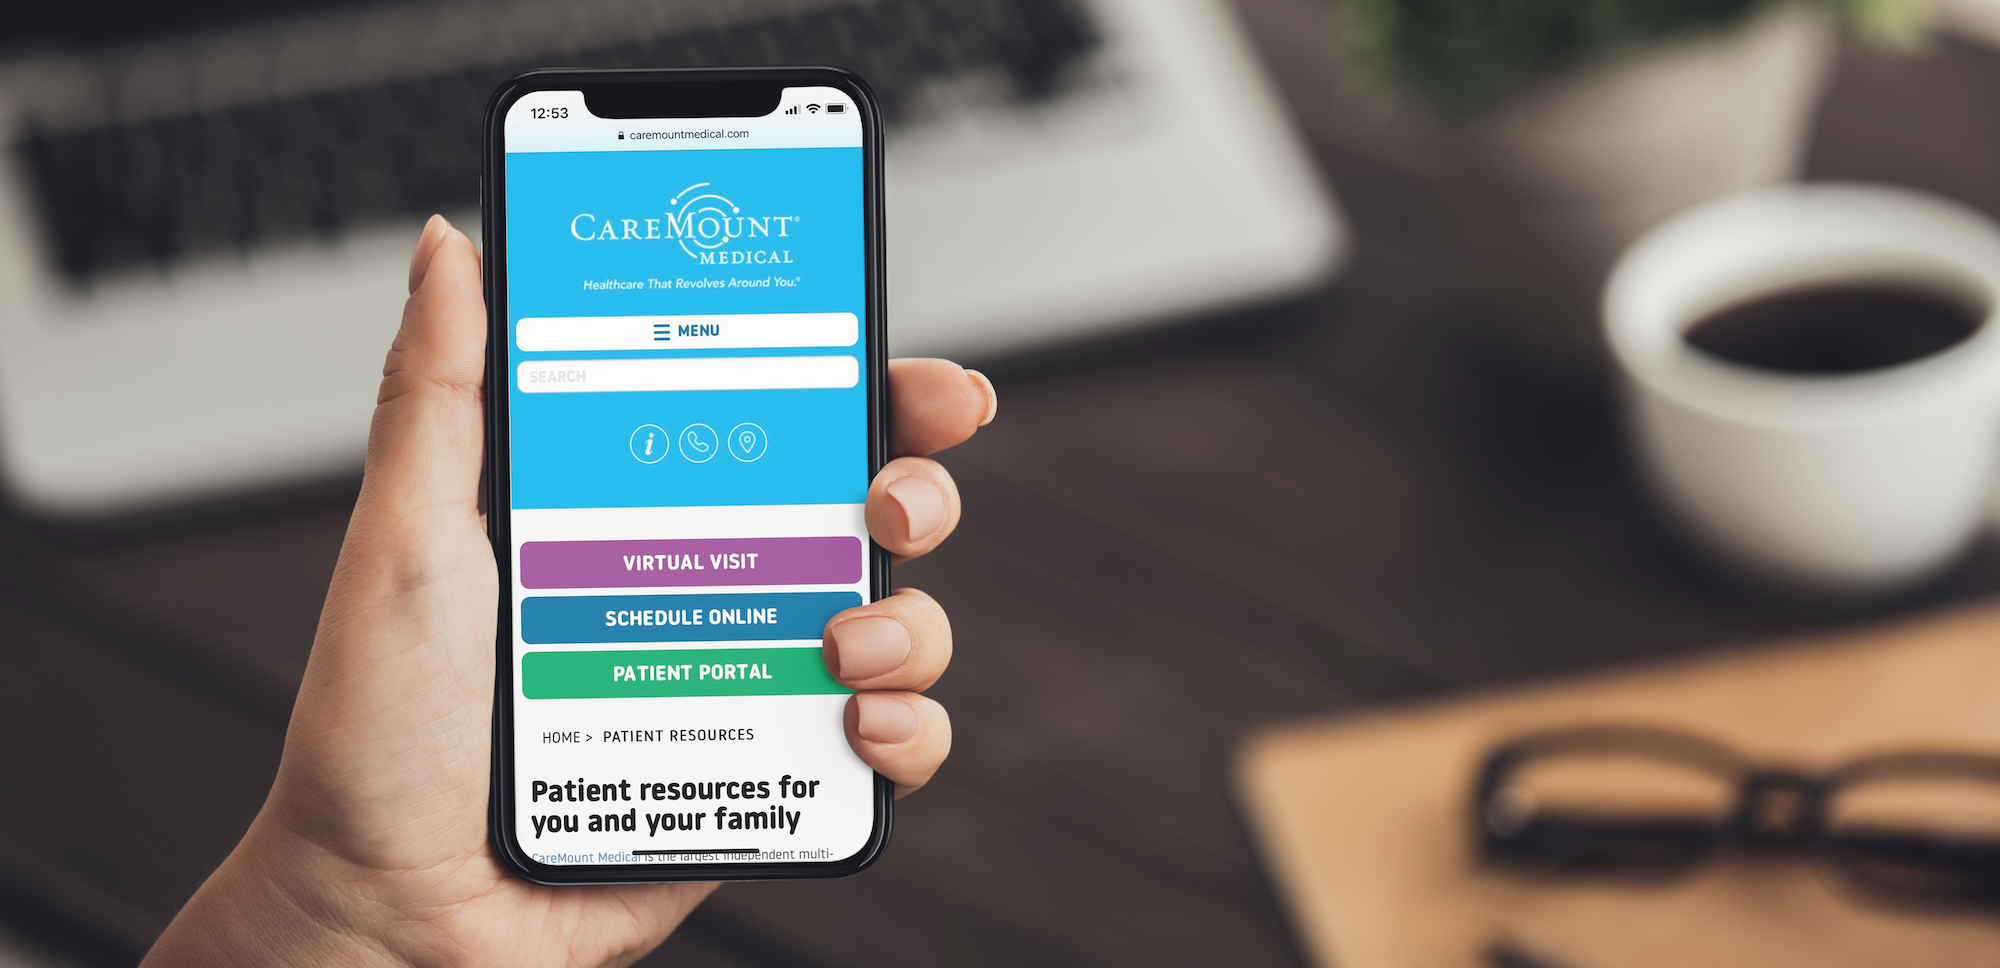 CareMount Medical enables 24/7 access with MyHealthDirect's online scheduling